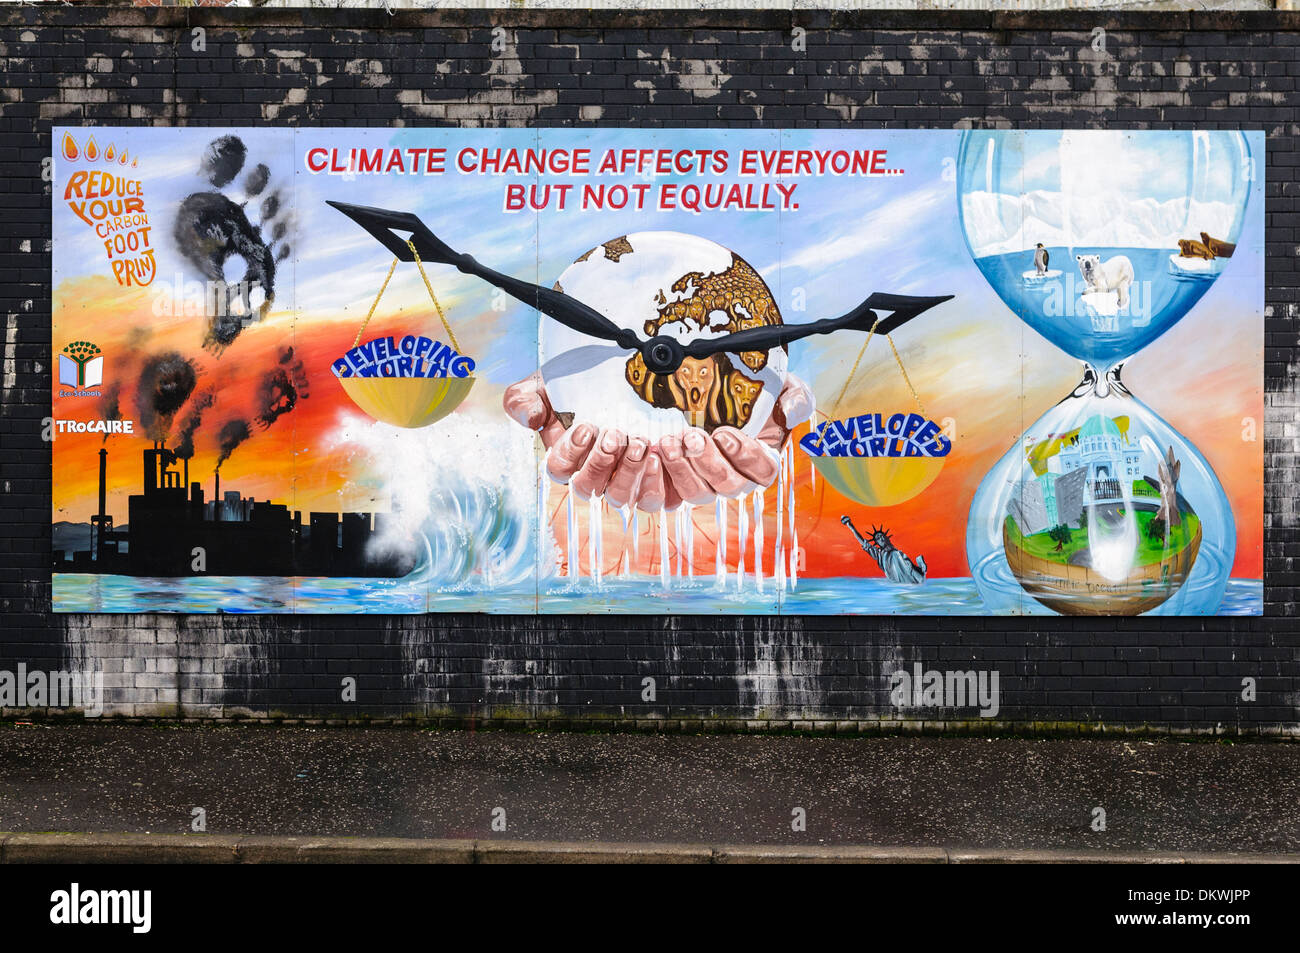 Mural at the International Peace Wall, Belfast, depicting effects of Climate Change - Stock Image